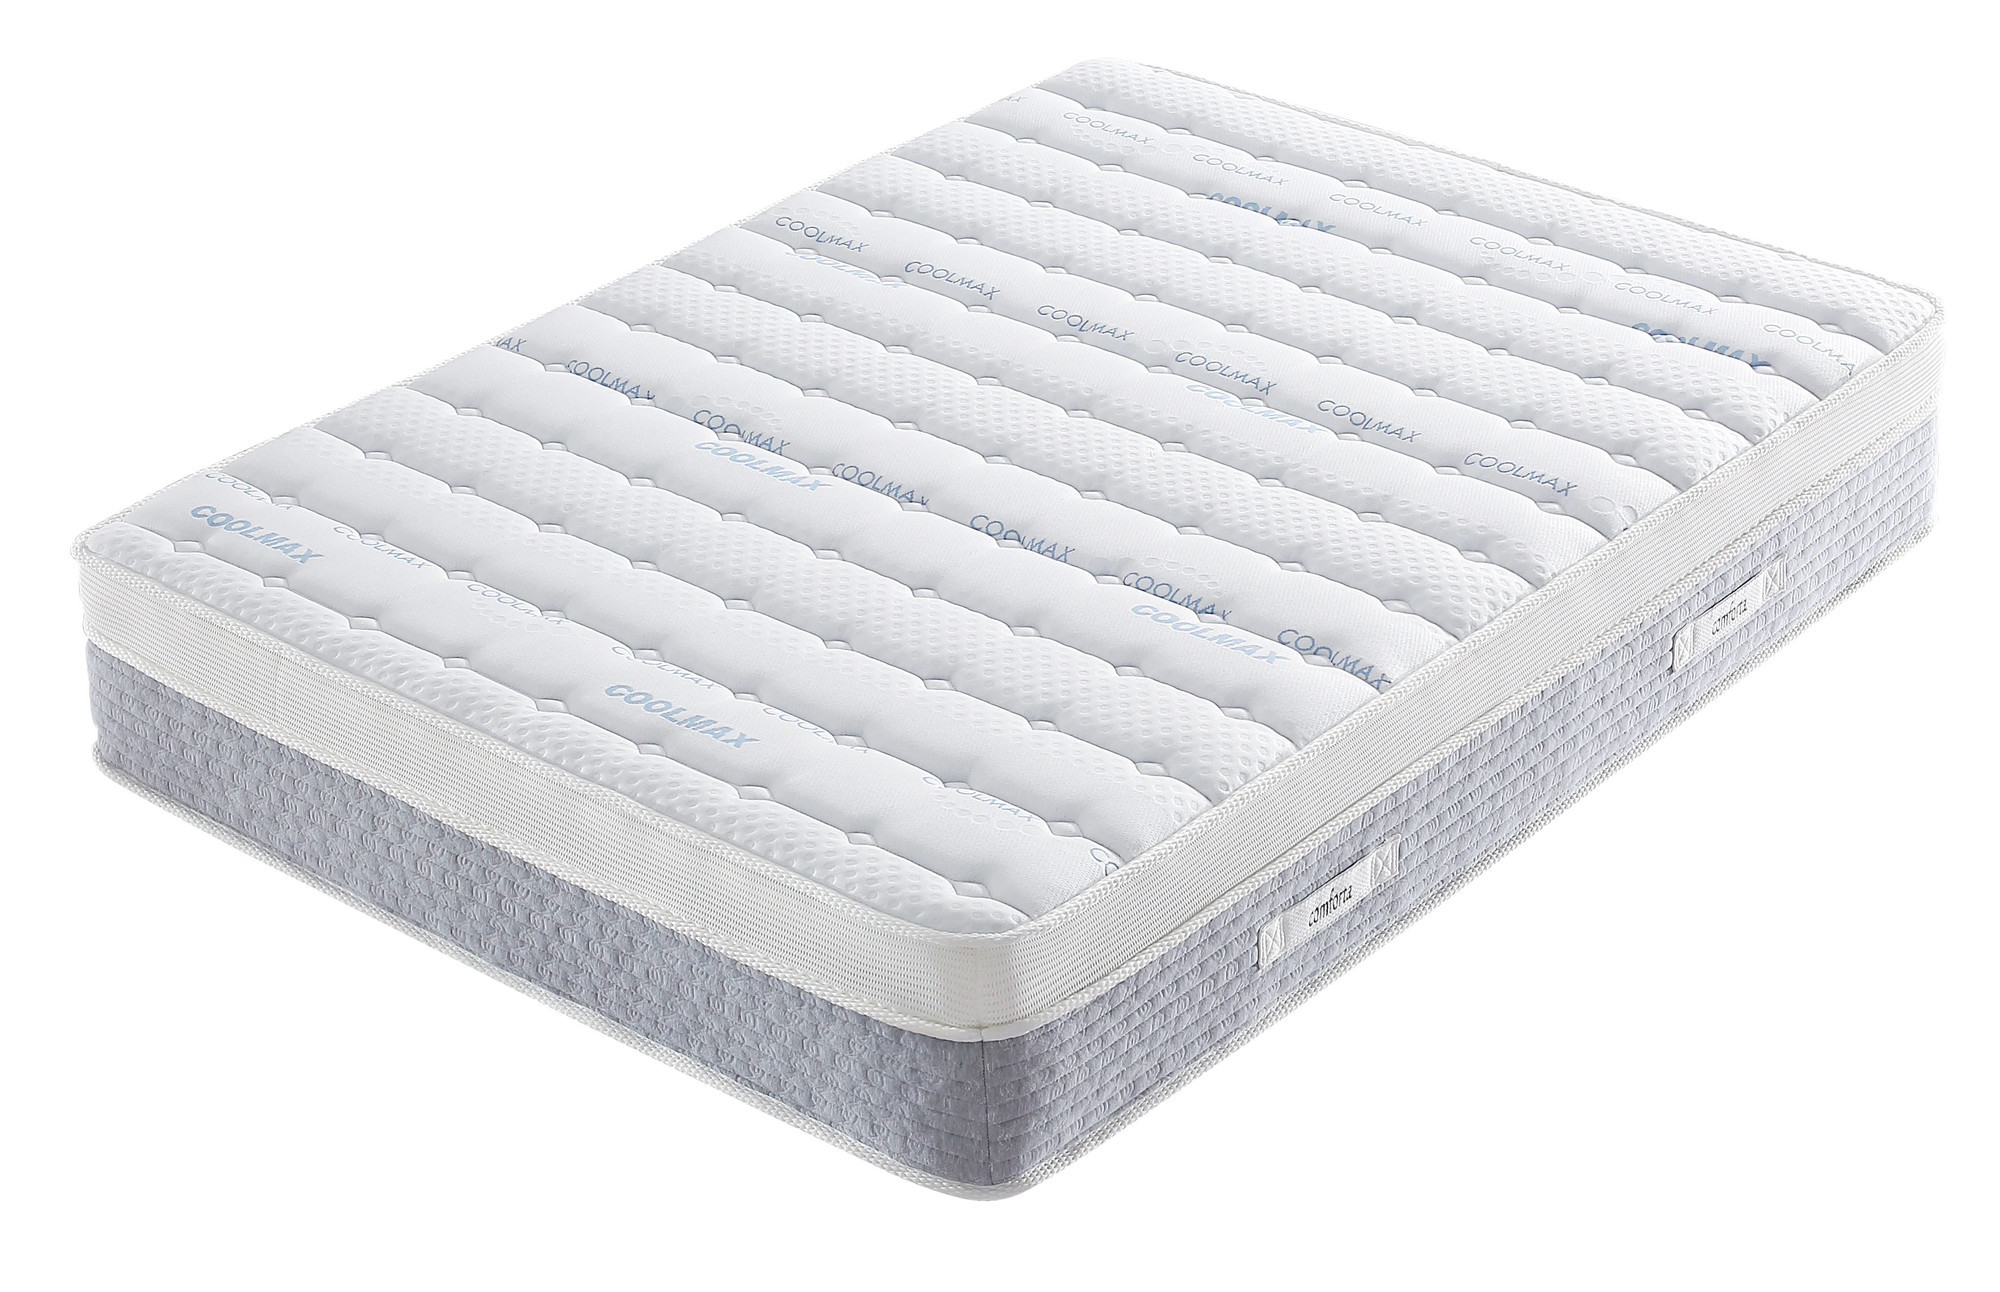 New Milan Direct Wynx Deluxe Mattress Cool Gel Memory